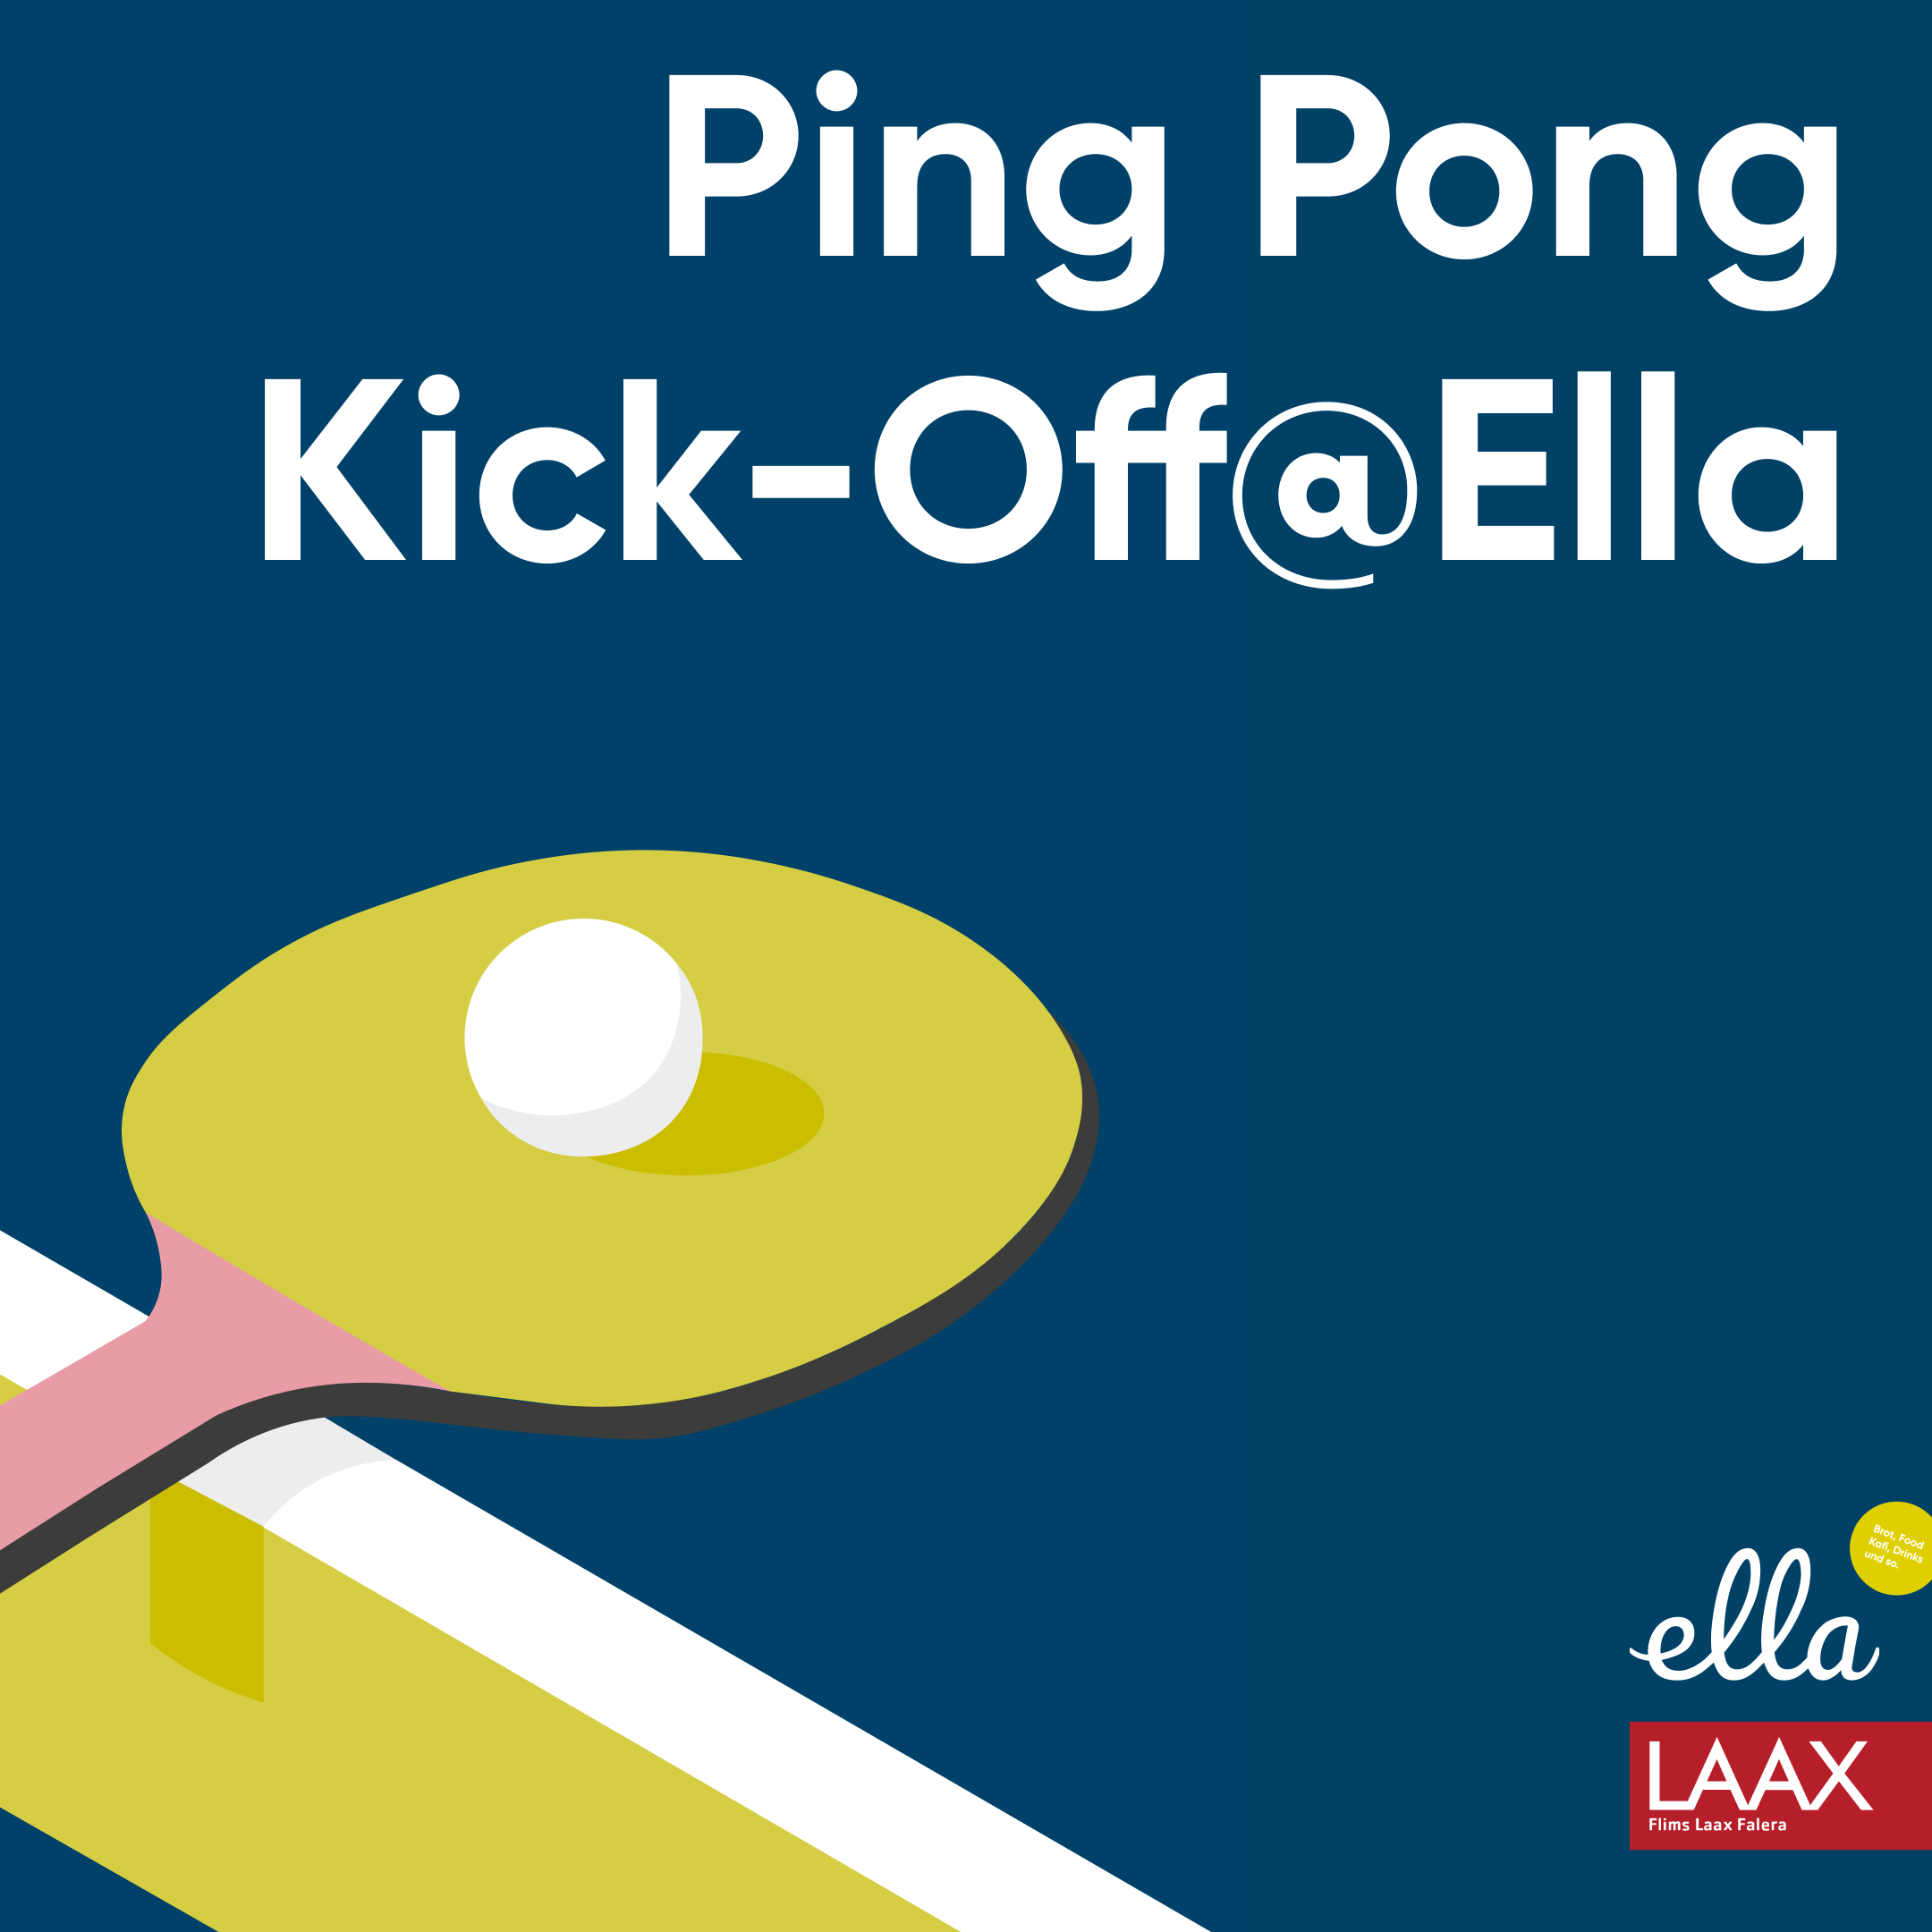 Ping Pong Kick-Off at Ella